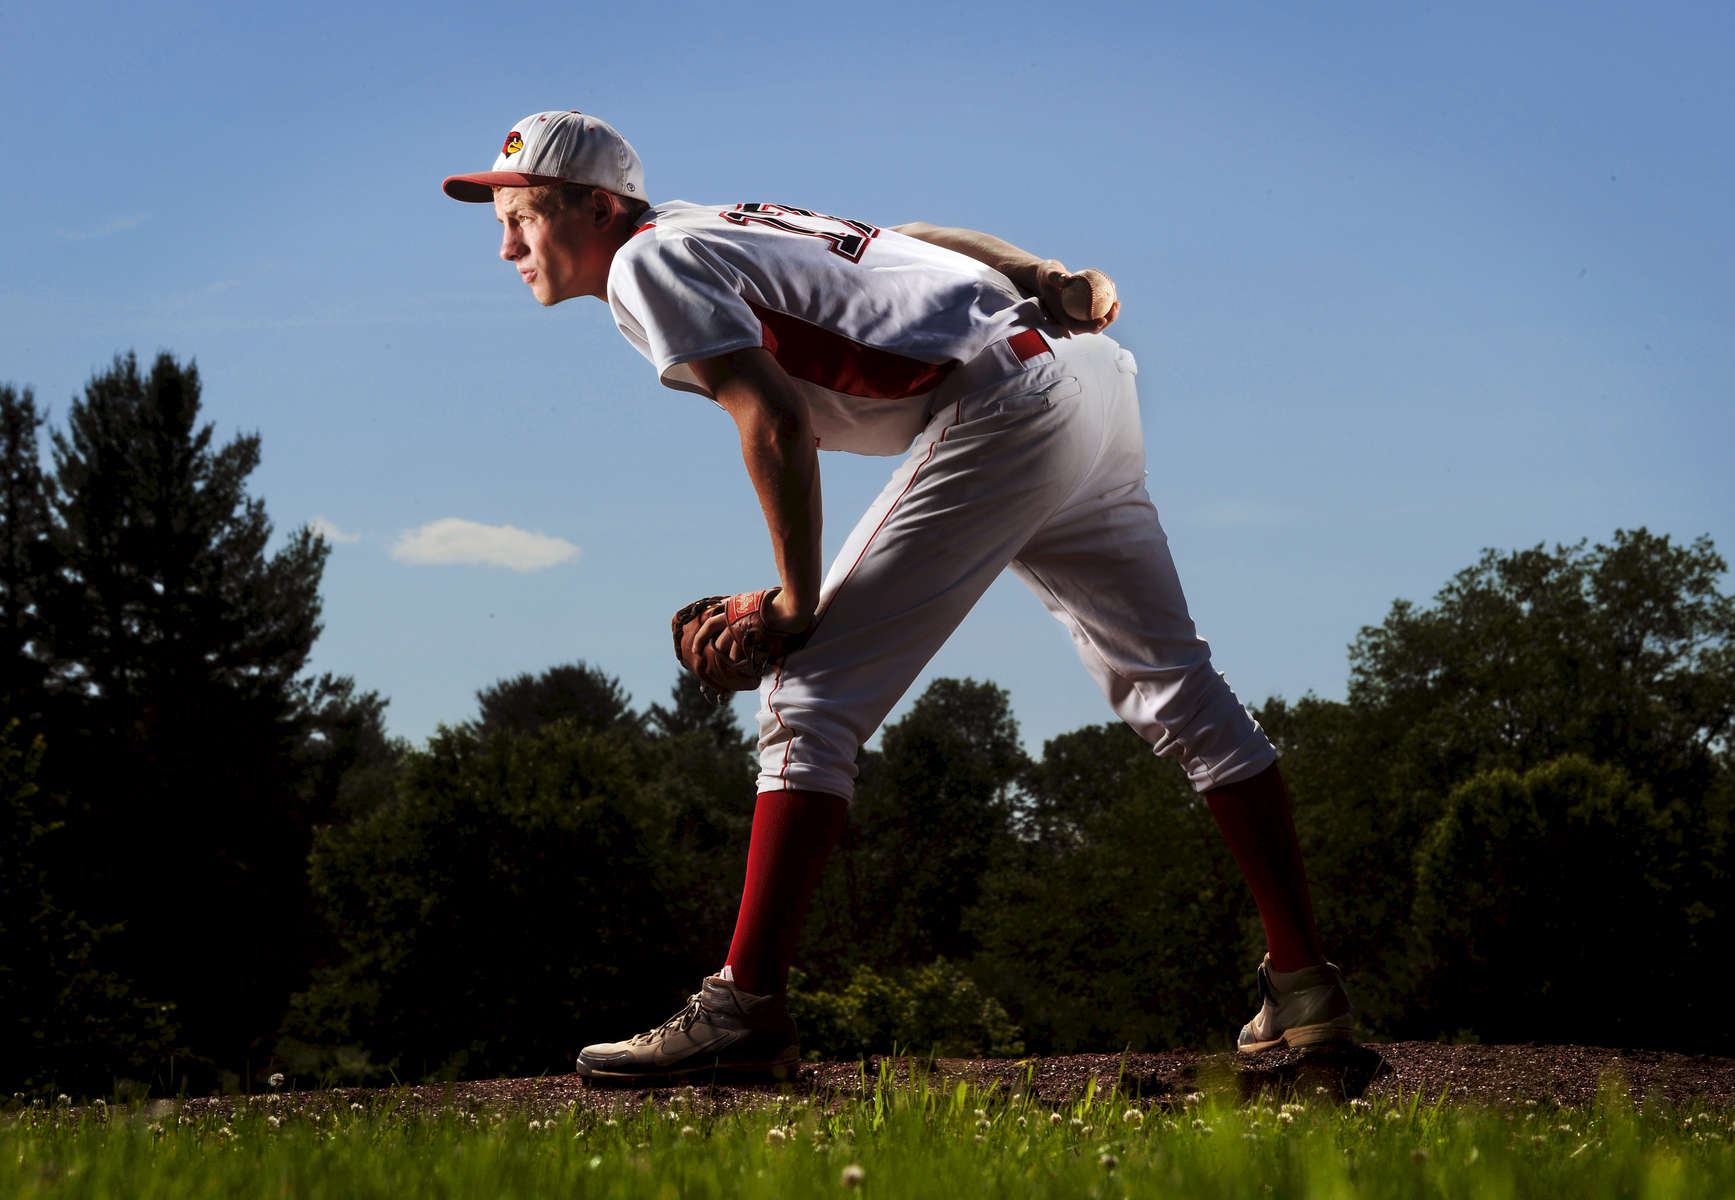 George Lehoisky of Fort Ann has been selected as The Post-Star\'s 2013 Baseball Player of the Year. (Jason McKibben - jmckibben@poststar.com)